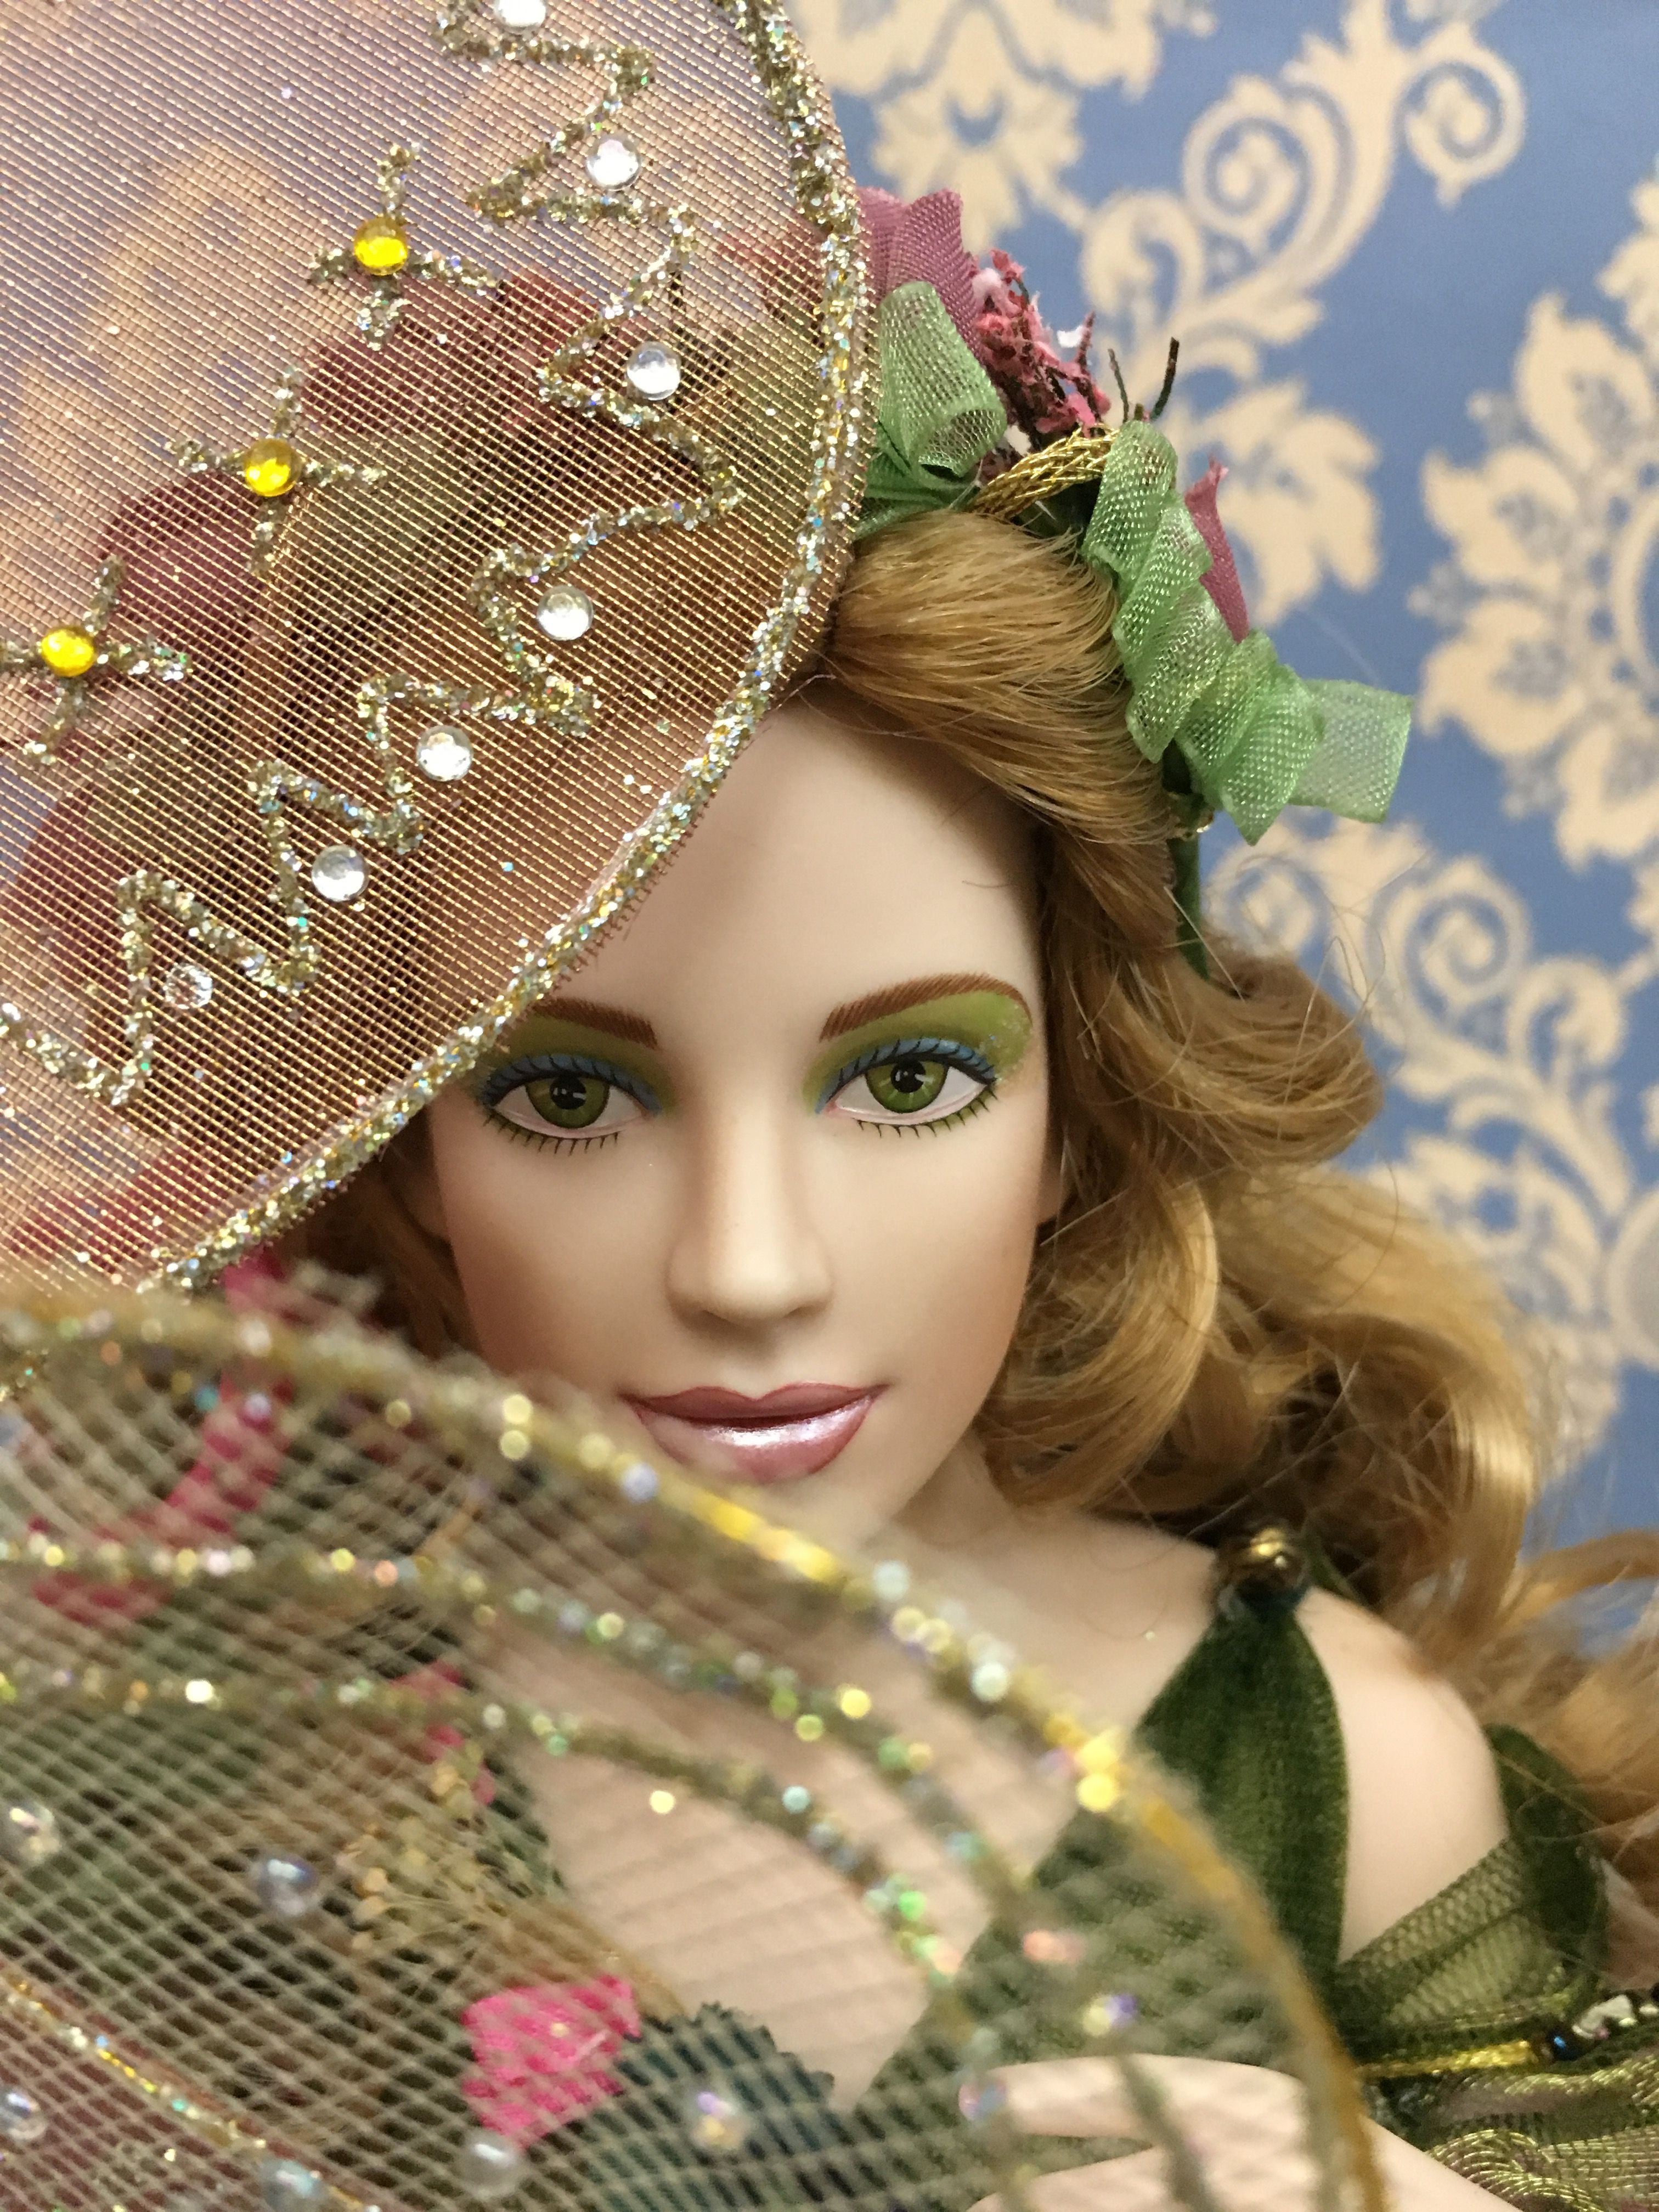 Titania The fairy s Queen. Porcelain doll by Franklin Mint